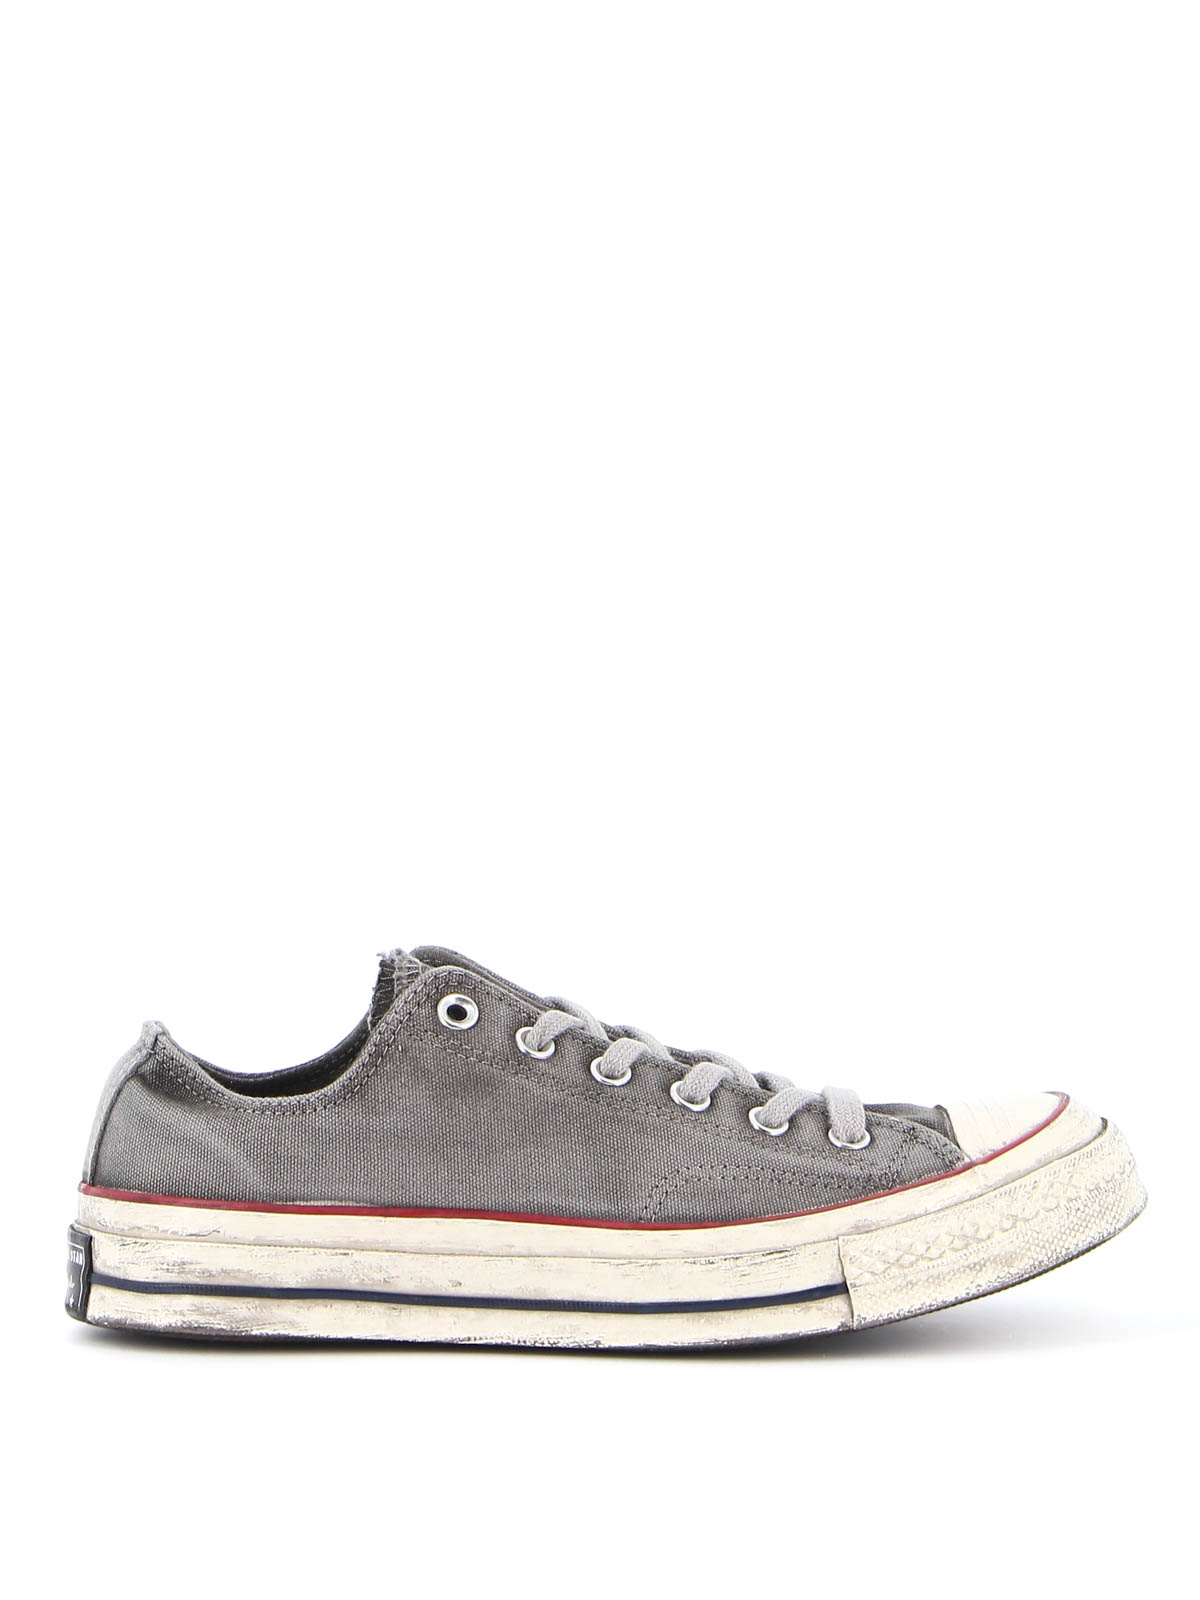 Trainers Converse - Vintage effect low-top sneakers - 171019C ...